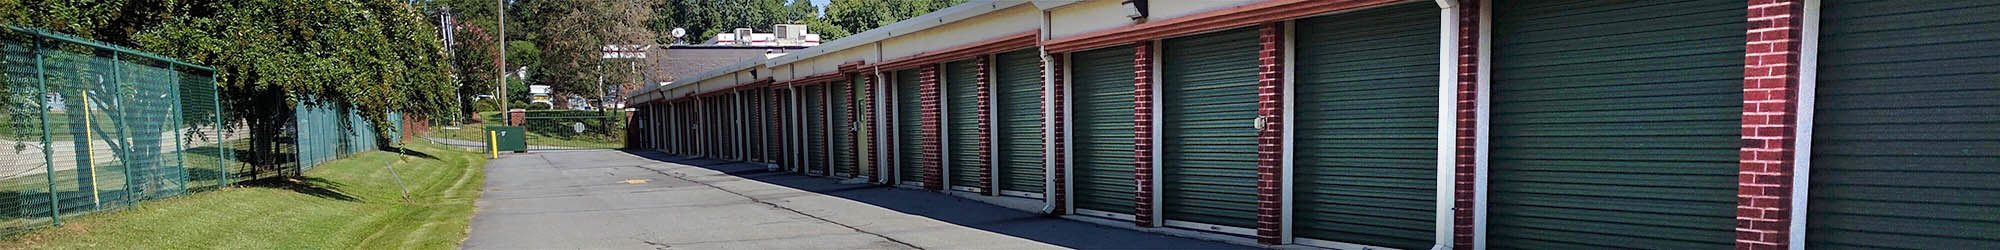 Drive-up storage at Reynolda Storage